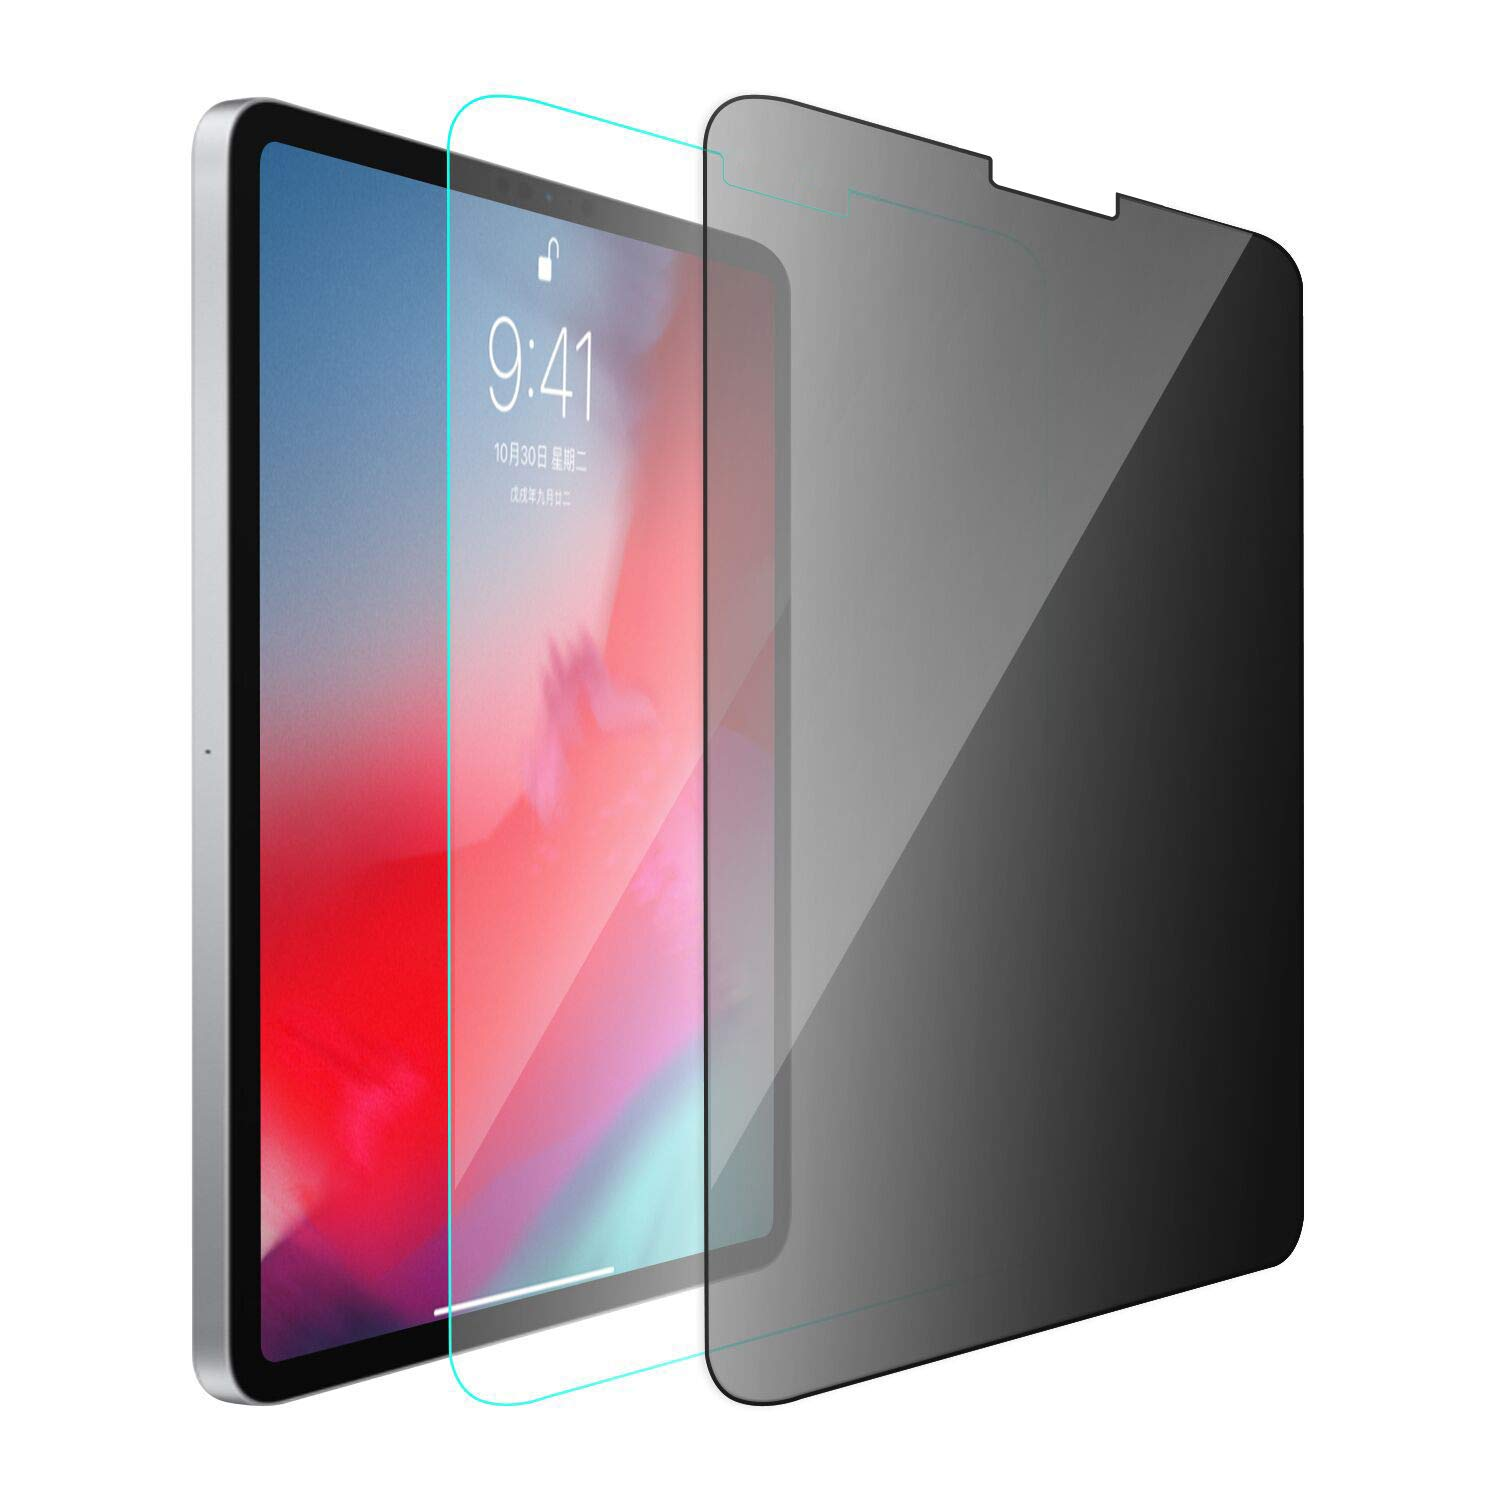 HYAIZLZ 360 Degree Privacy Screen Protector for iPad Pro 11 9H Hardness Tempered Glass Screen Protector(2018),1pcs privacy/1pcs Glass Screen Protector